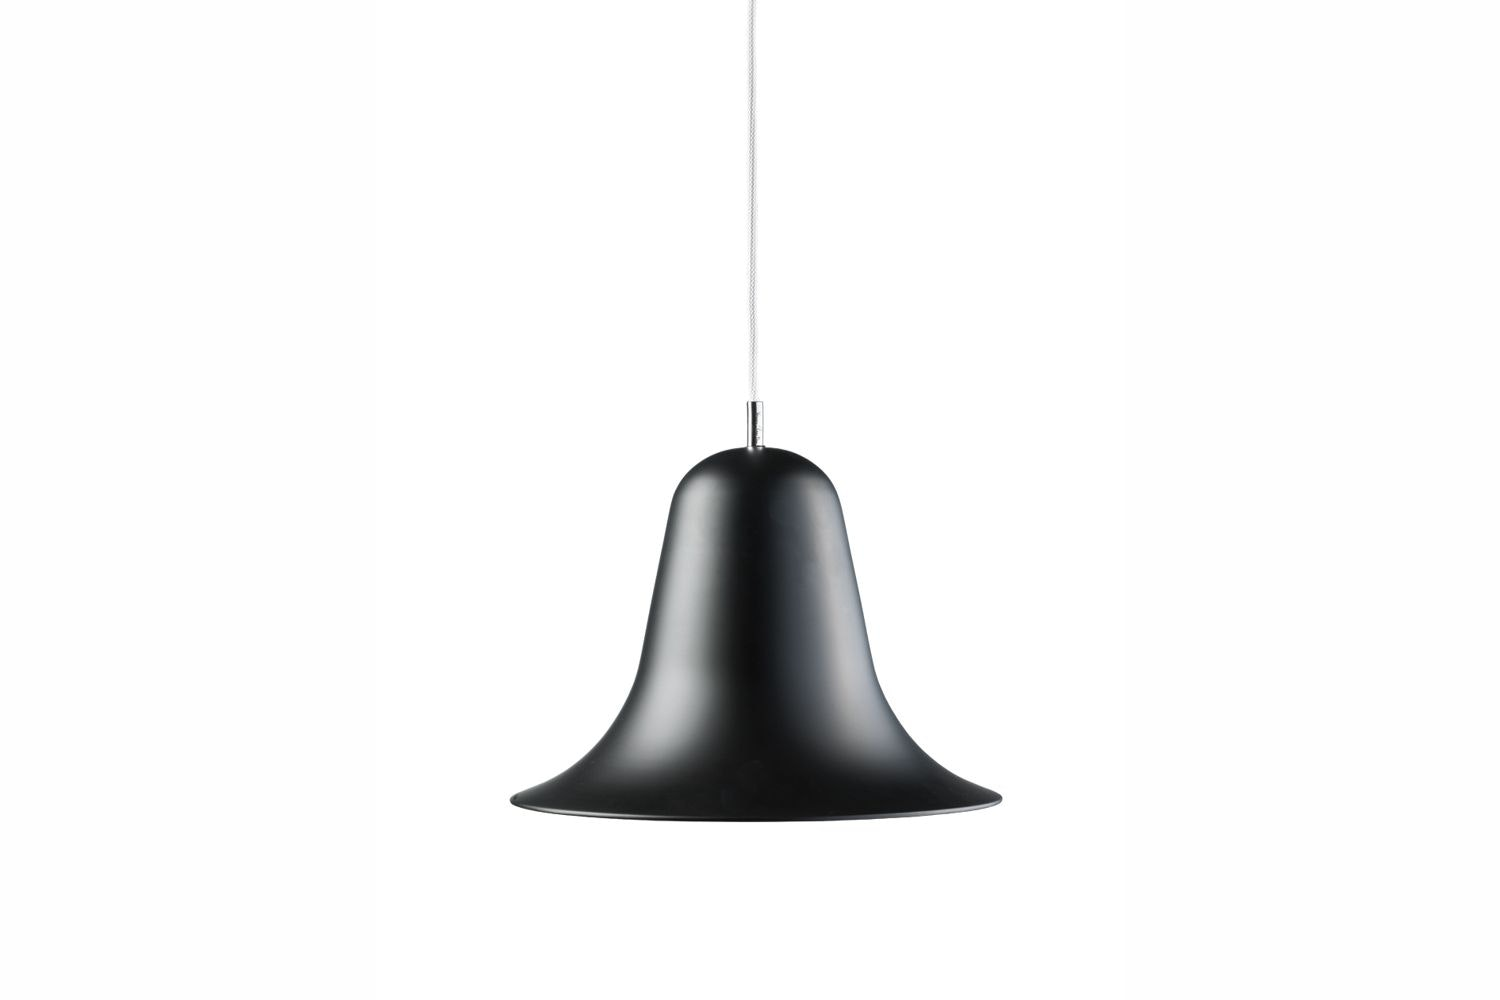 Pantop Pendant Lamp in Black by Verner Panton for Verpan